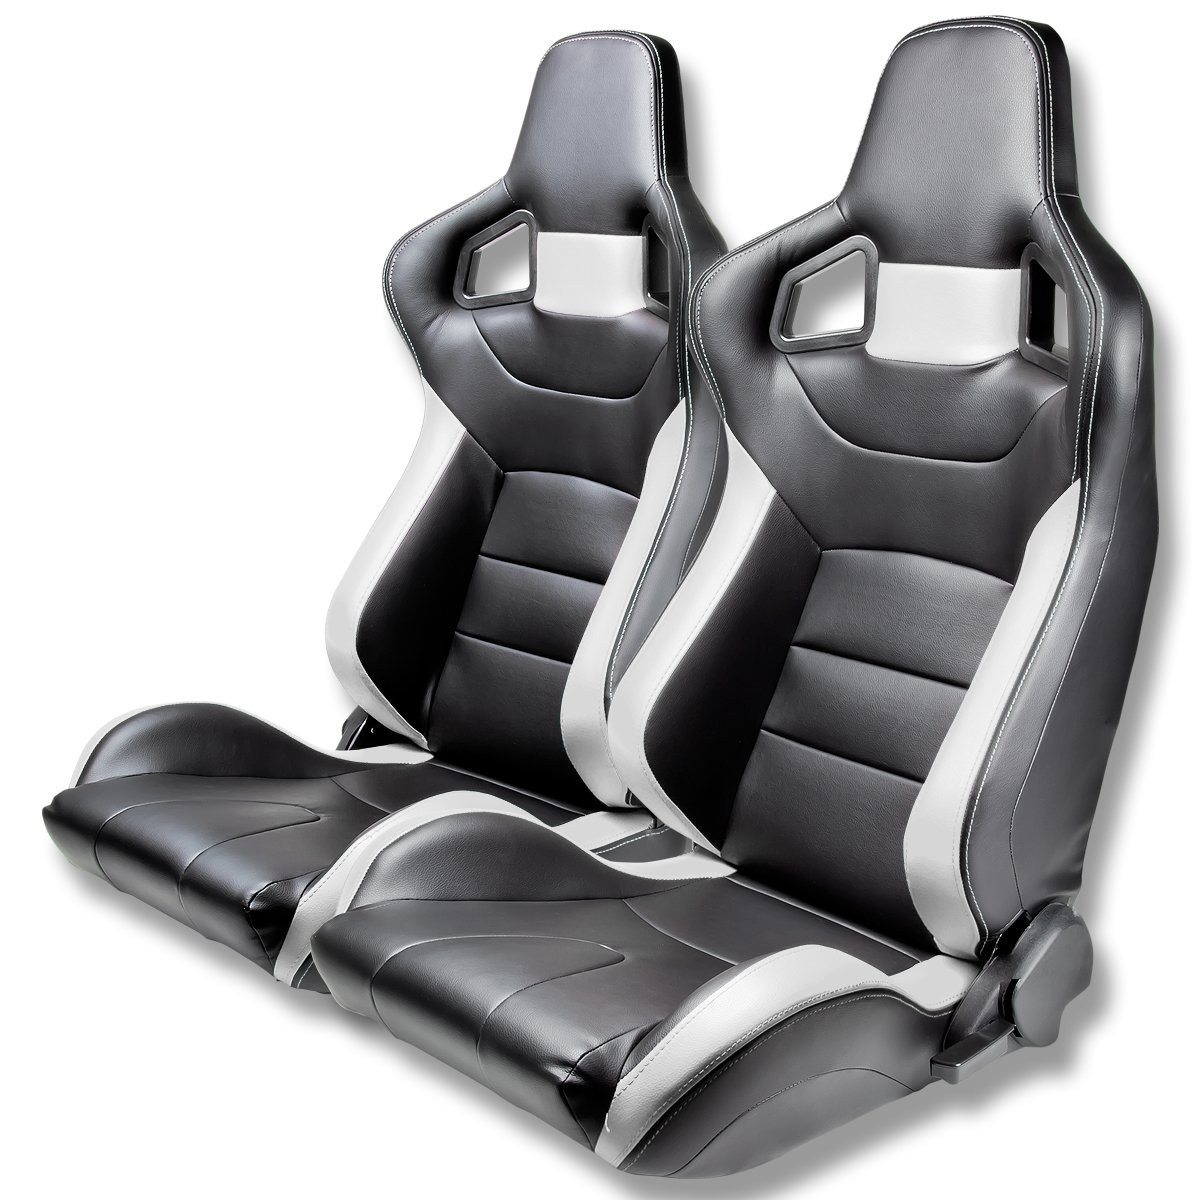 Tuner Series Full Reclinable Black Leather Racing Seats With Silver Trim Set of 2 Auto Dynasty